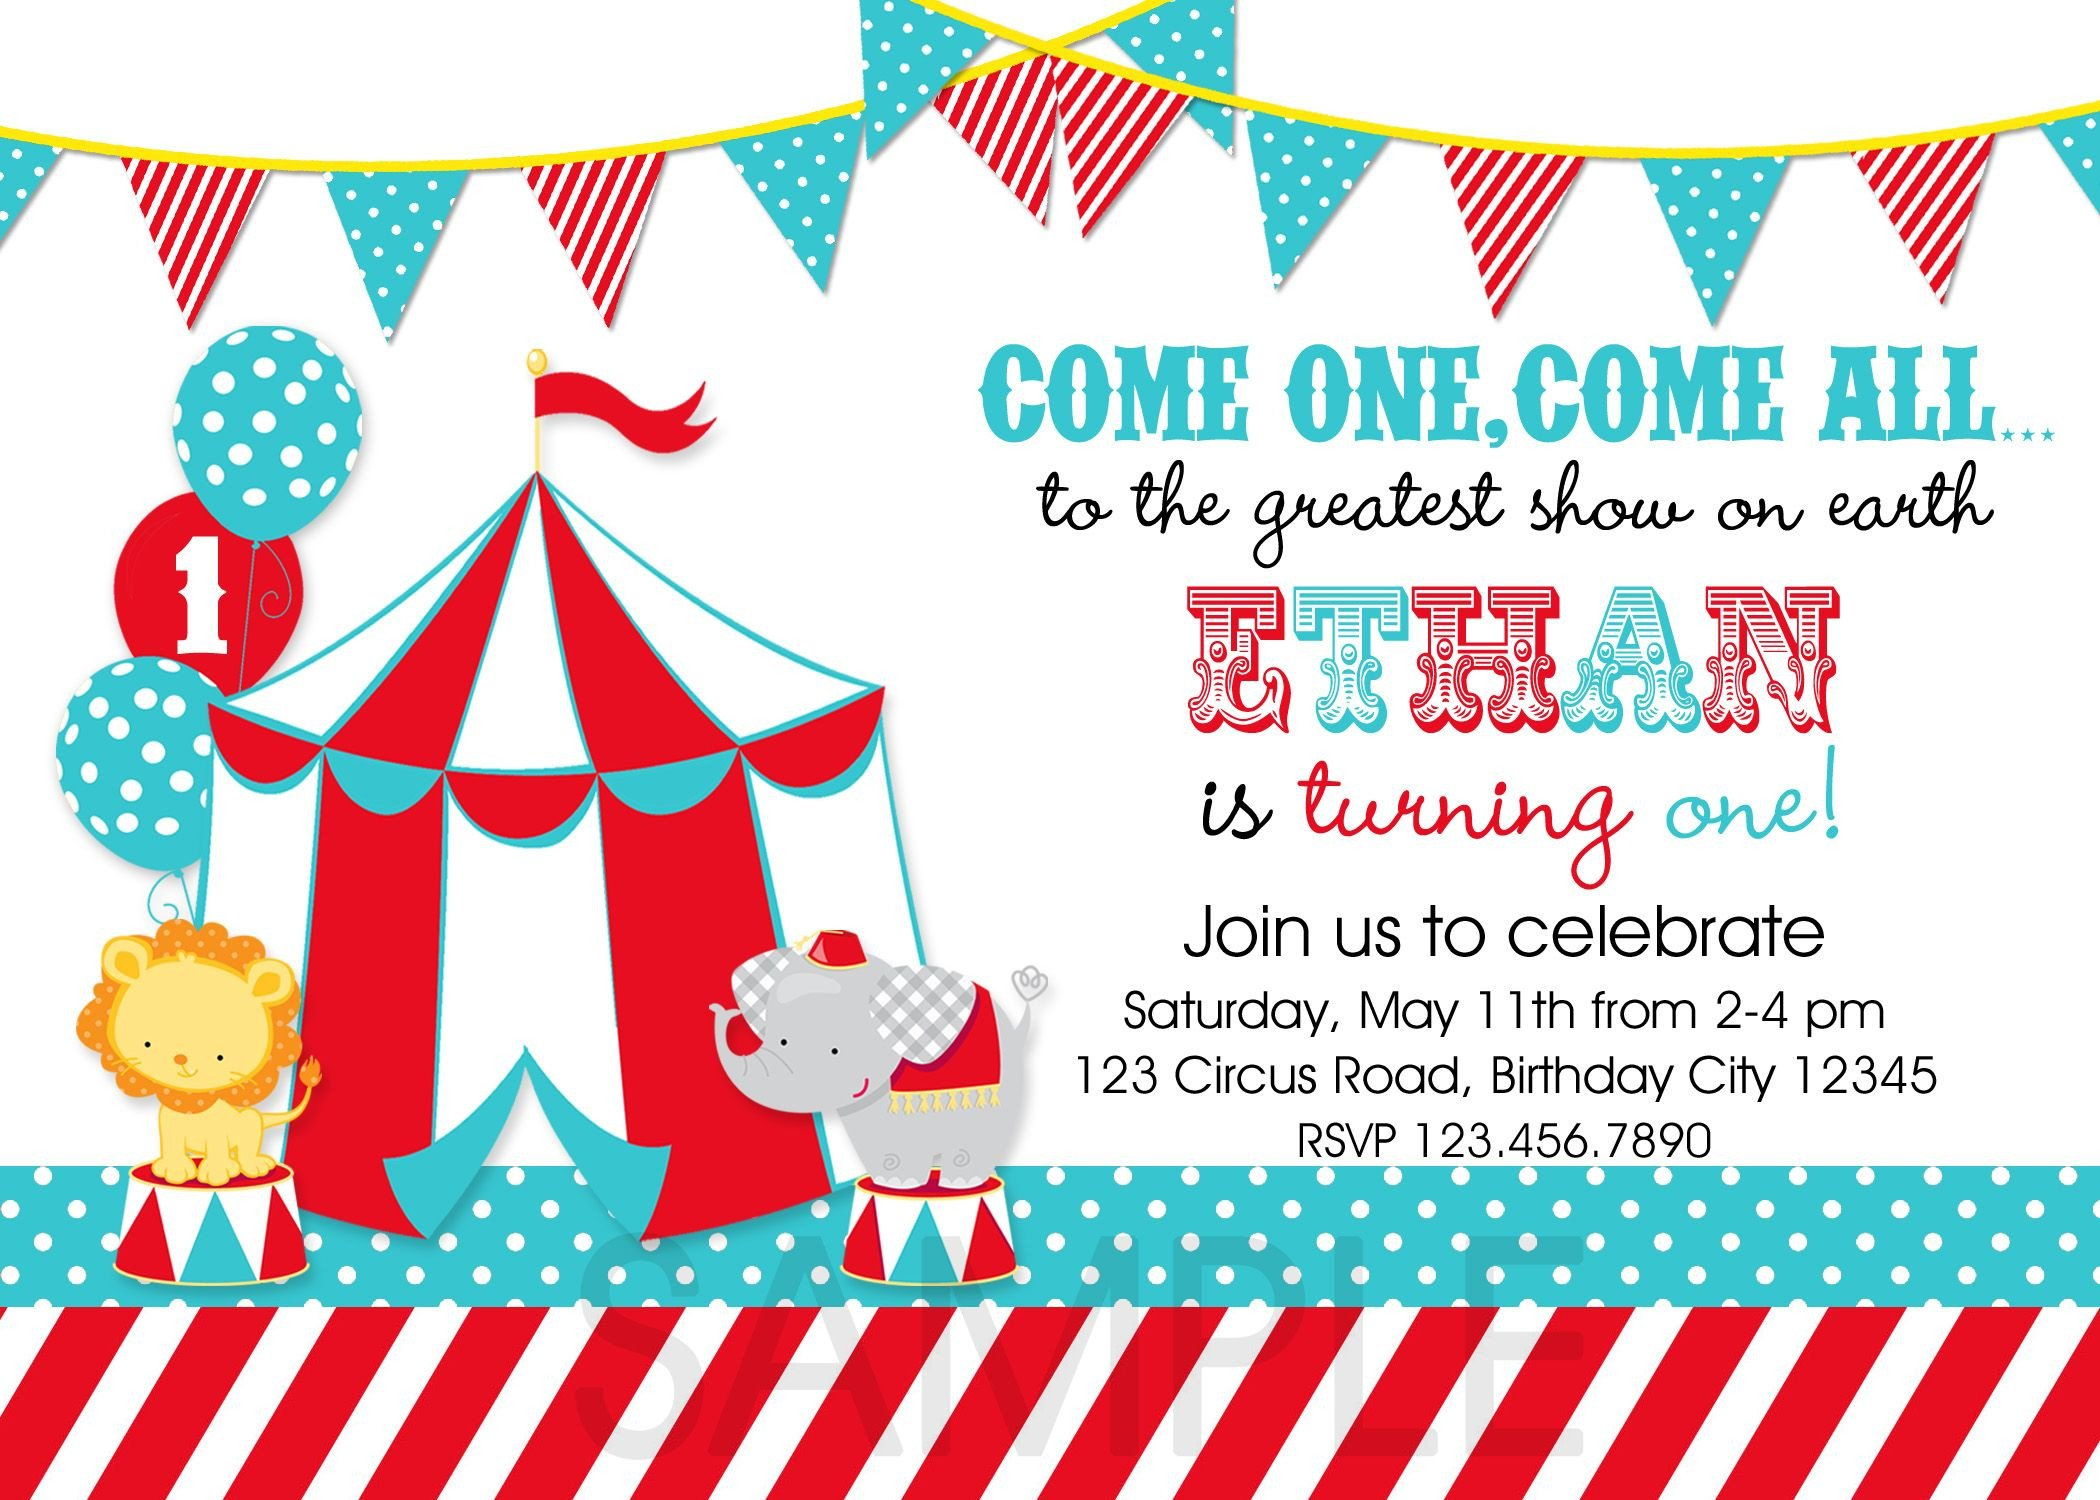 Carnival Invitation Template Free Circus Party Invitations Template 3zcfy9xw